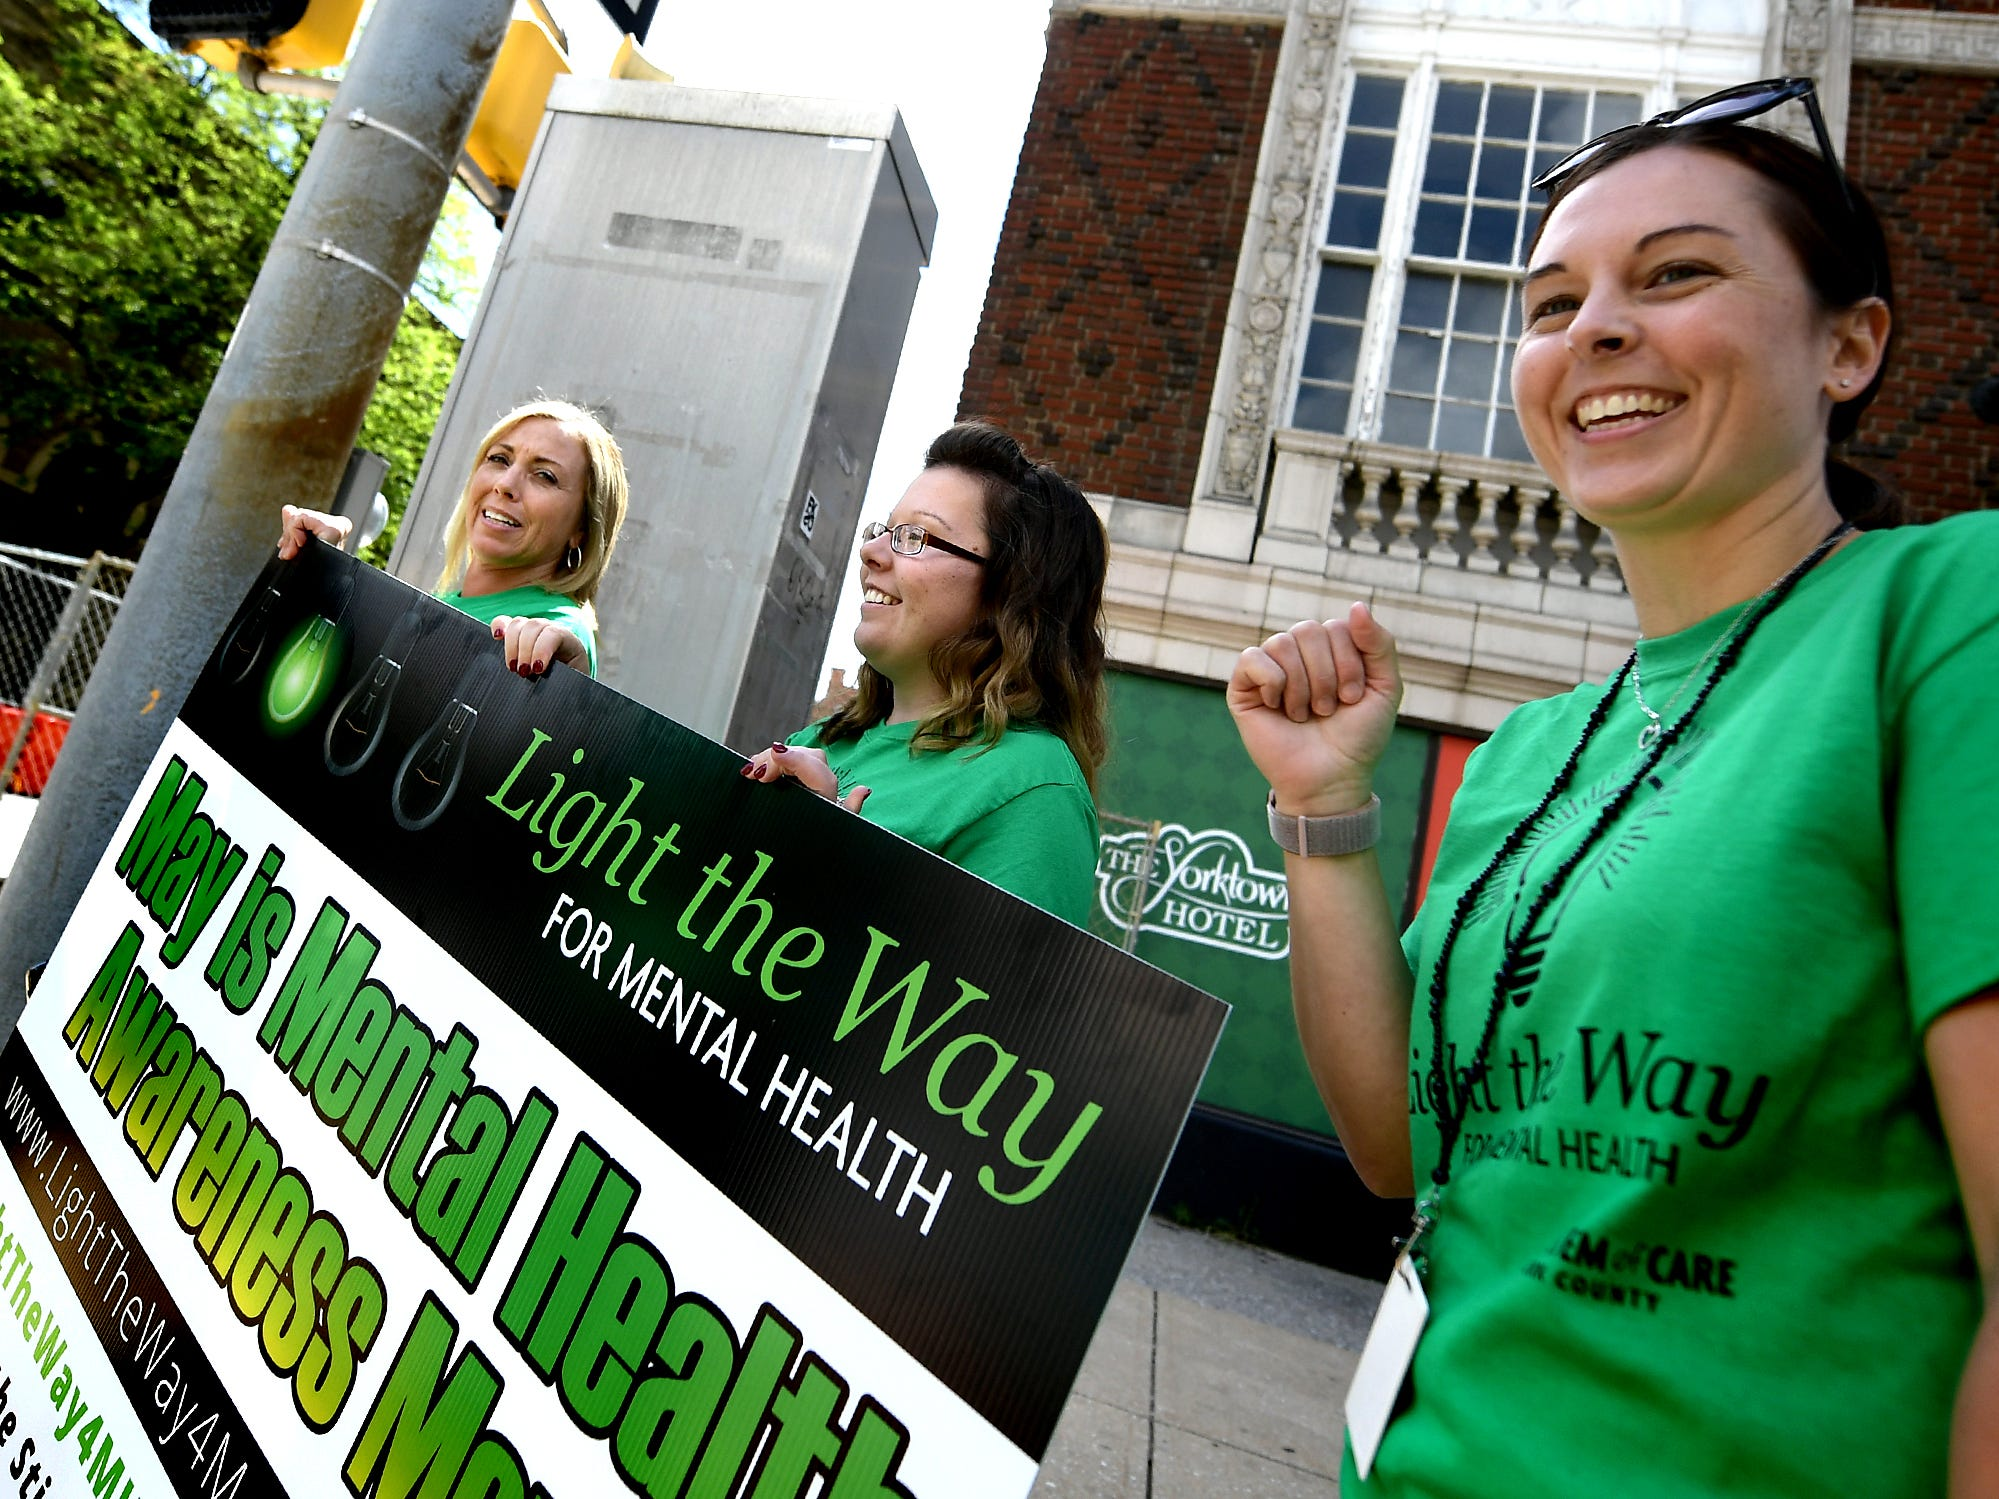 York County Human Services employees, from left, Tiffani Kleiser, Tiffany Sager and Dawn Hopkins cross Market Street during the Walk To Raise Awareness About Mental Health in York City Monday, May 6, 2019. The York County System of Care in collaboration with York County Human Services sponsored the walk during Mental Health Awareness Month. Area business and organizations will be displaying green lighting through May 12th to show support. Bill Kalina photo